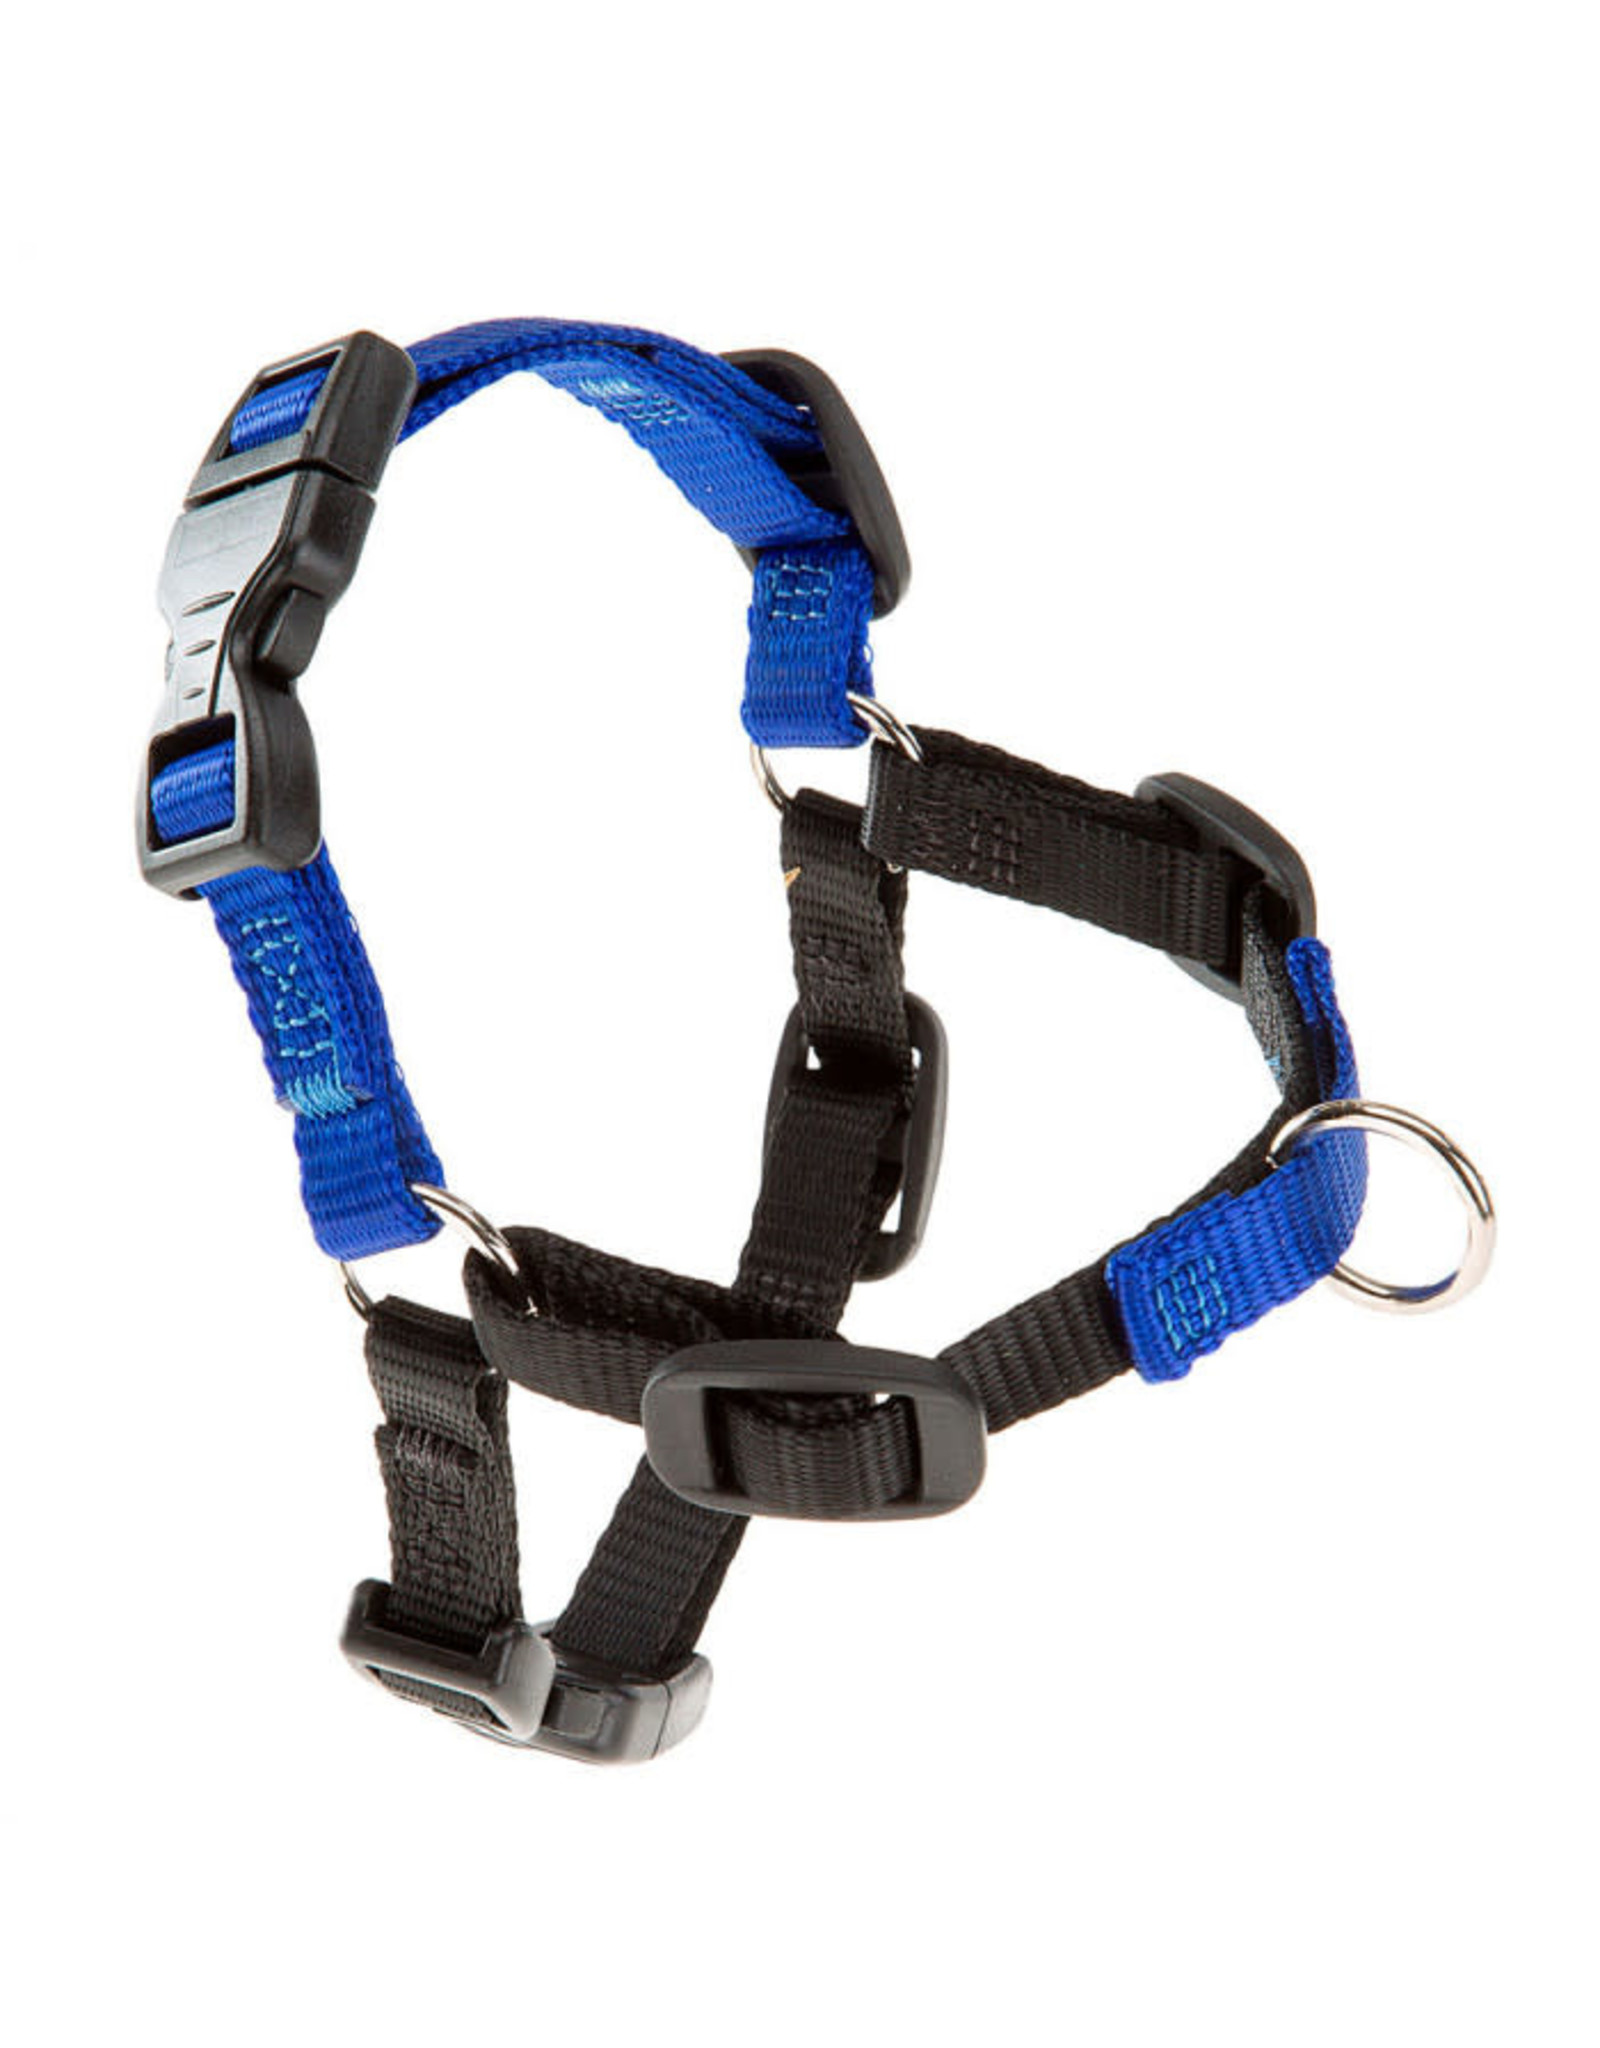 Ferplast Coach Non Pull Dog Harness, Blue Small - Medium *Clearance